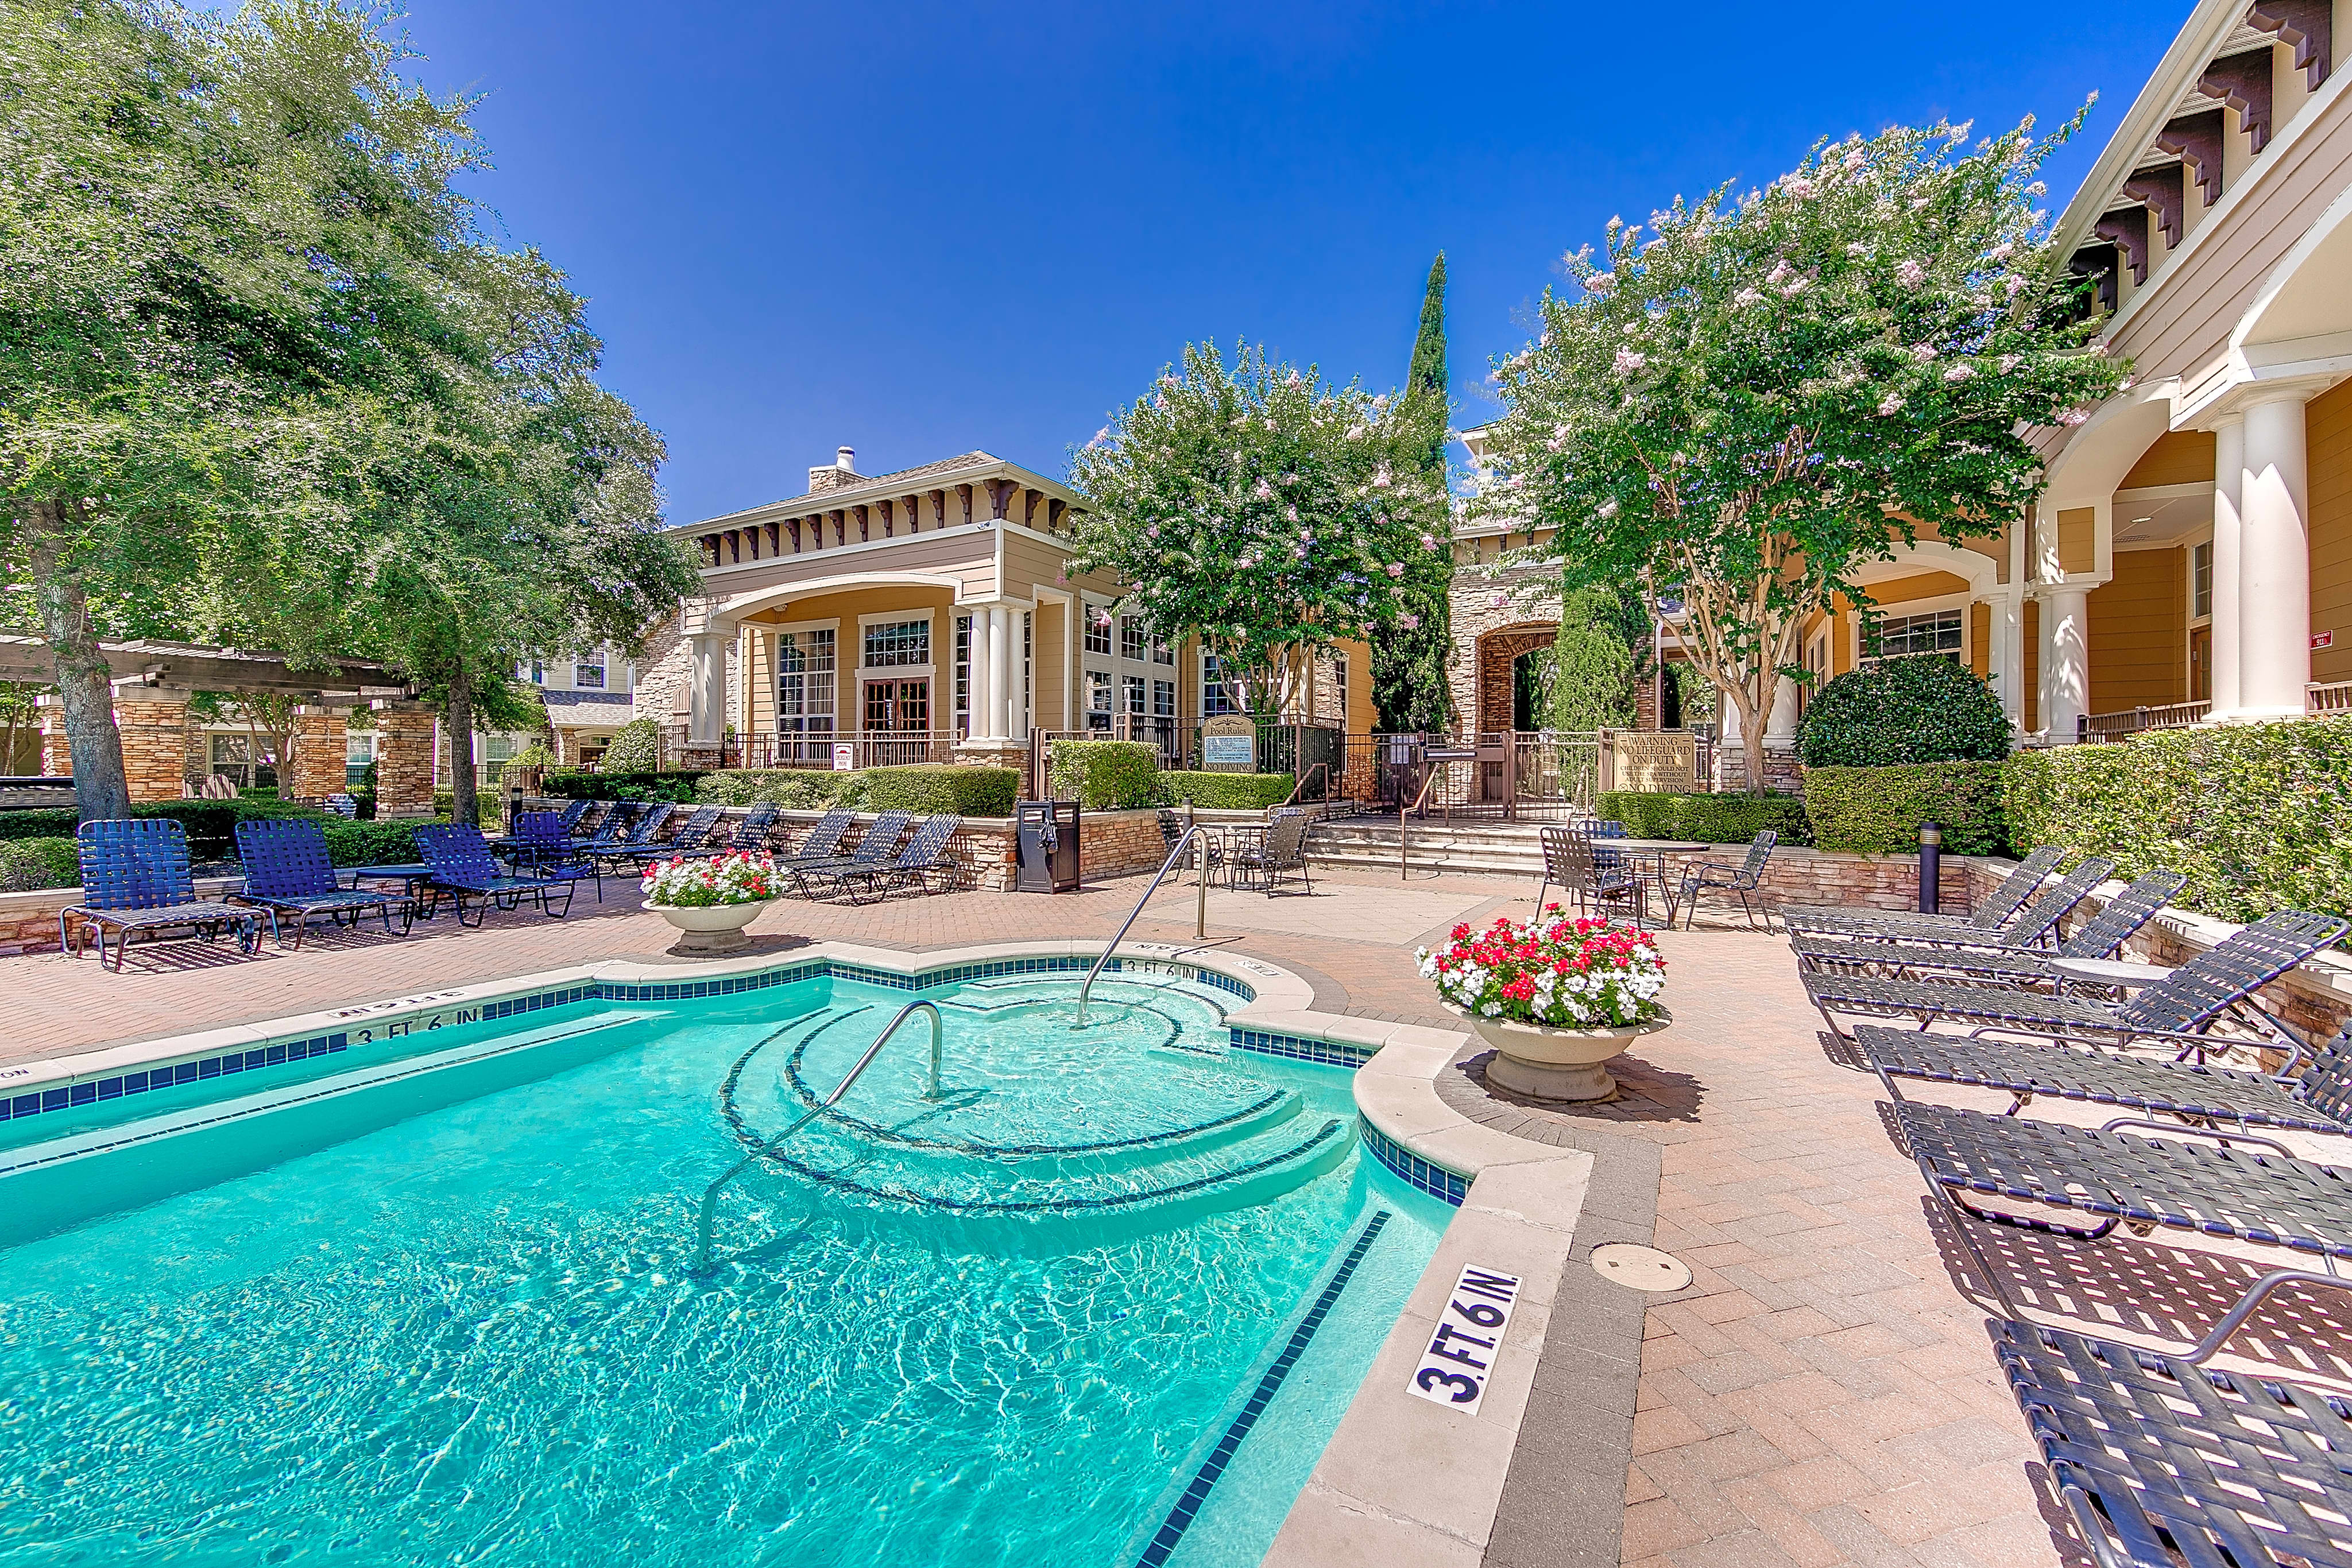 Apartment Rentals in Plano, TX Living in Plano, Texas offers innumerable benefits, including easy access to all of the sights and attractions of the local DFW area. When searching for an apartment to rent in Plano, TX it is important to know what to look for.